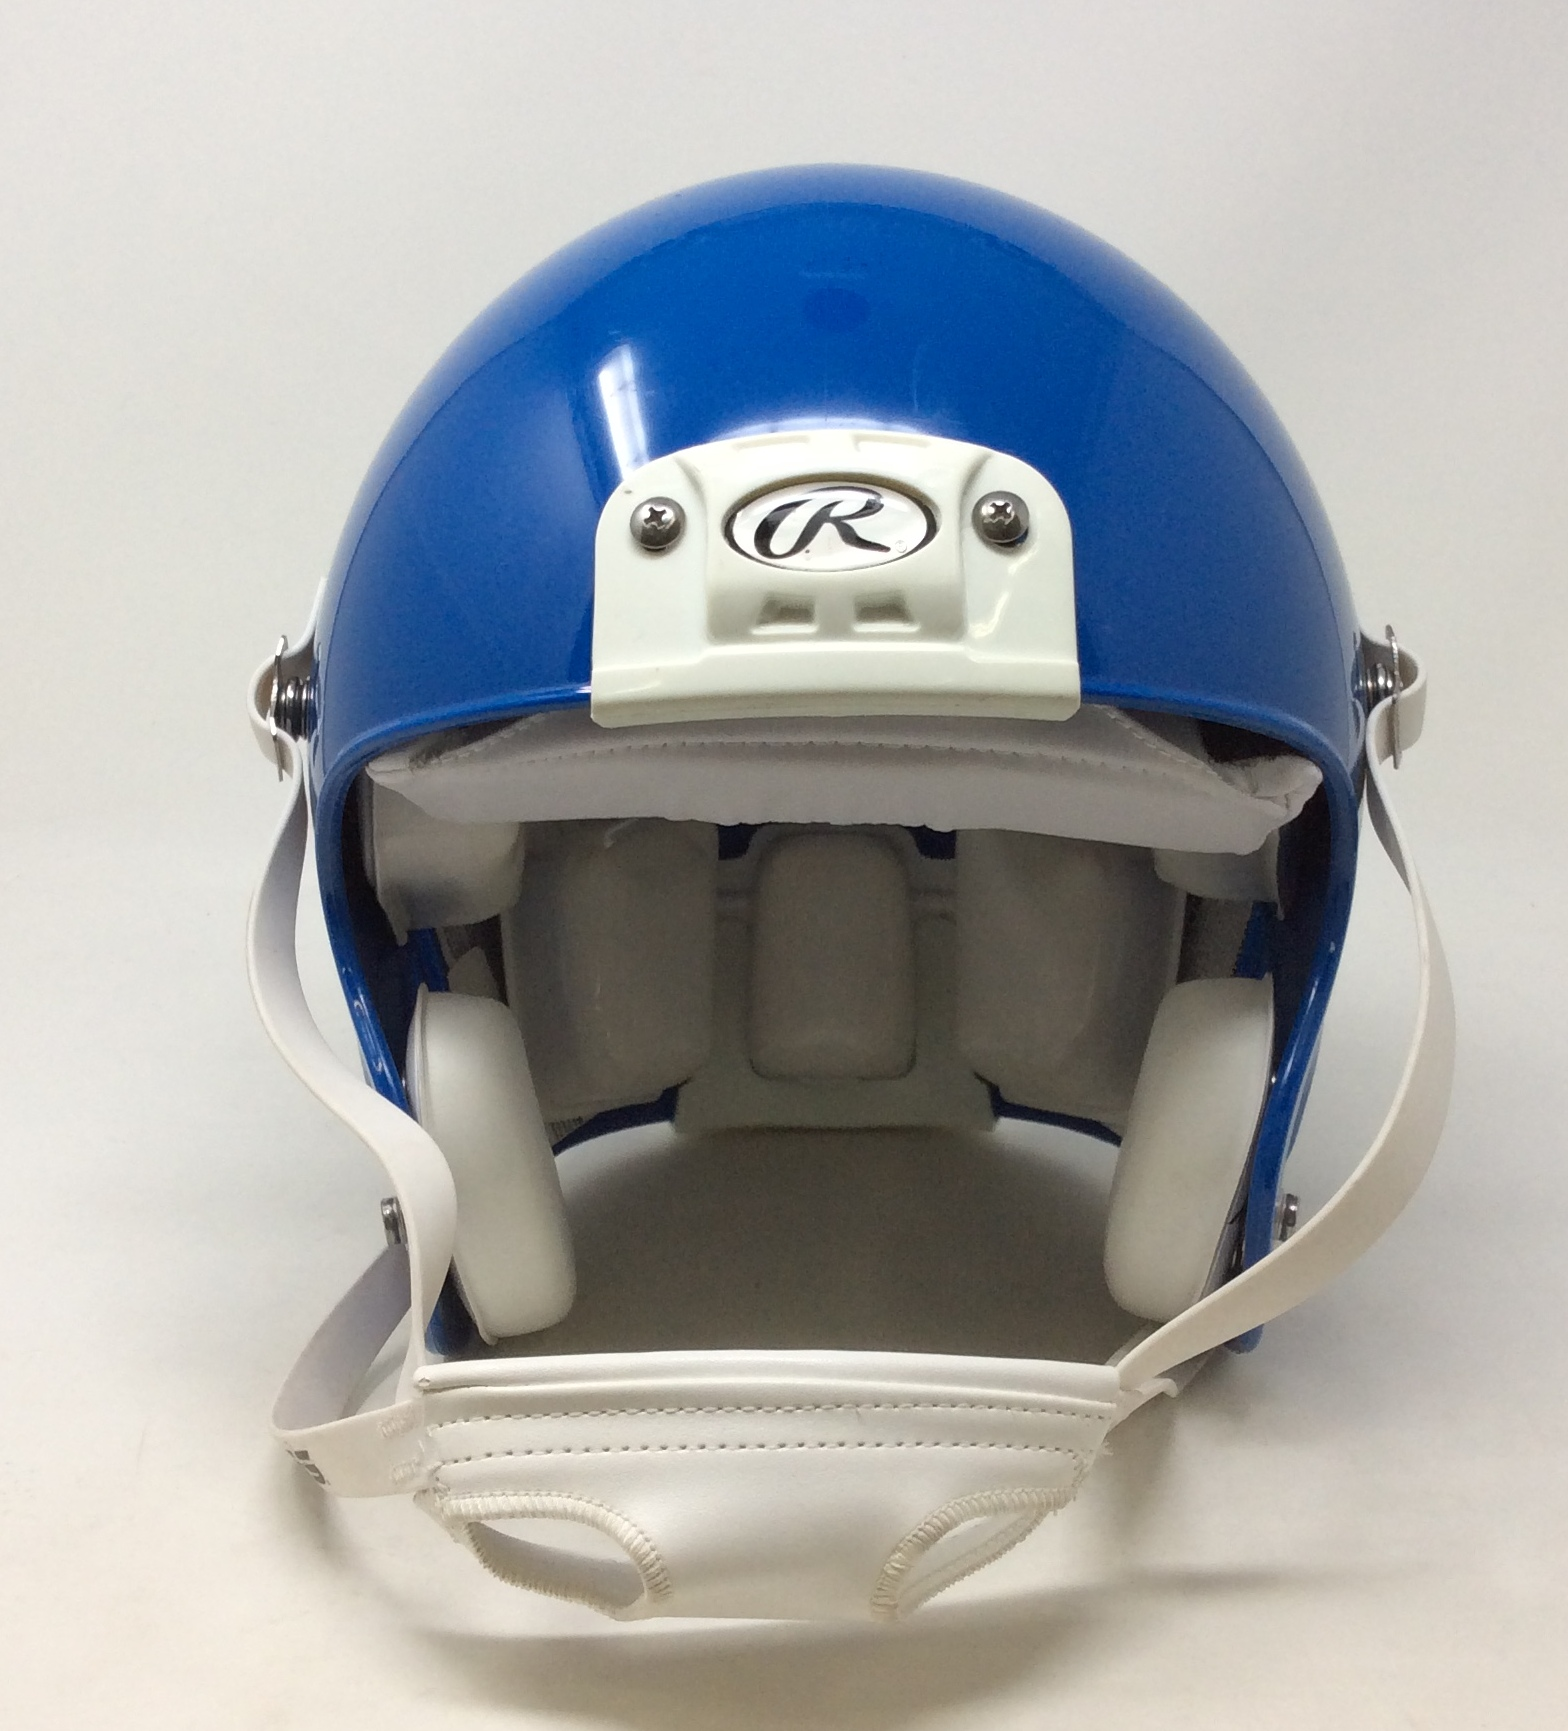 Rawlings Adult Impulse Football Helmet Royal Size Medium